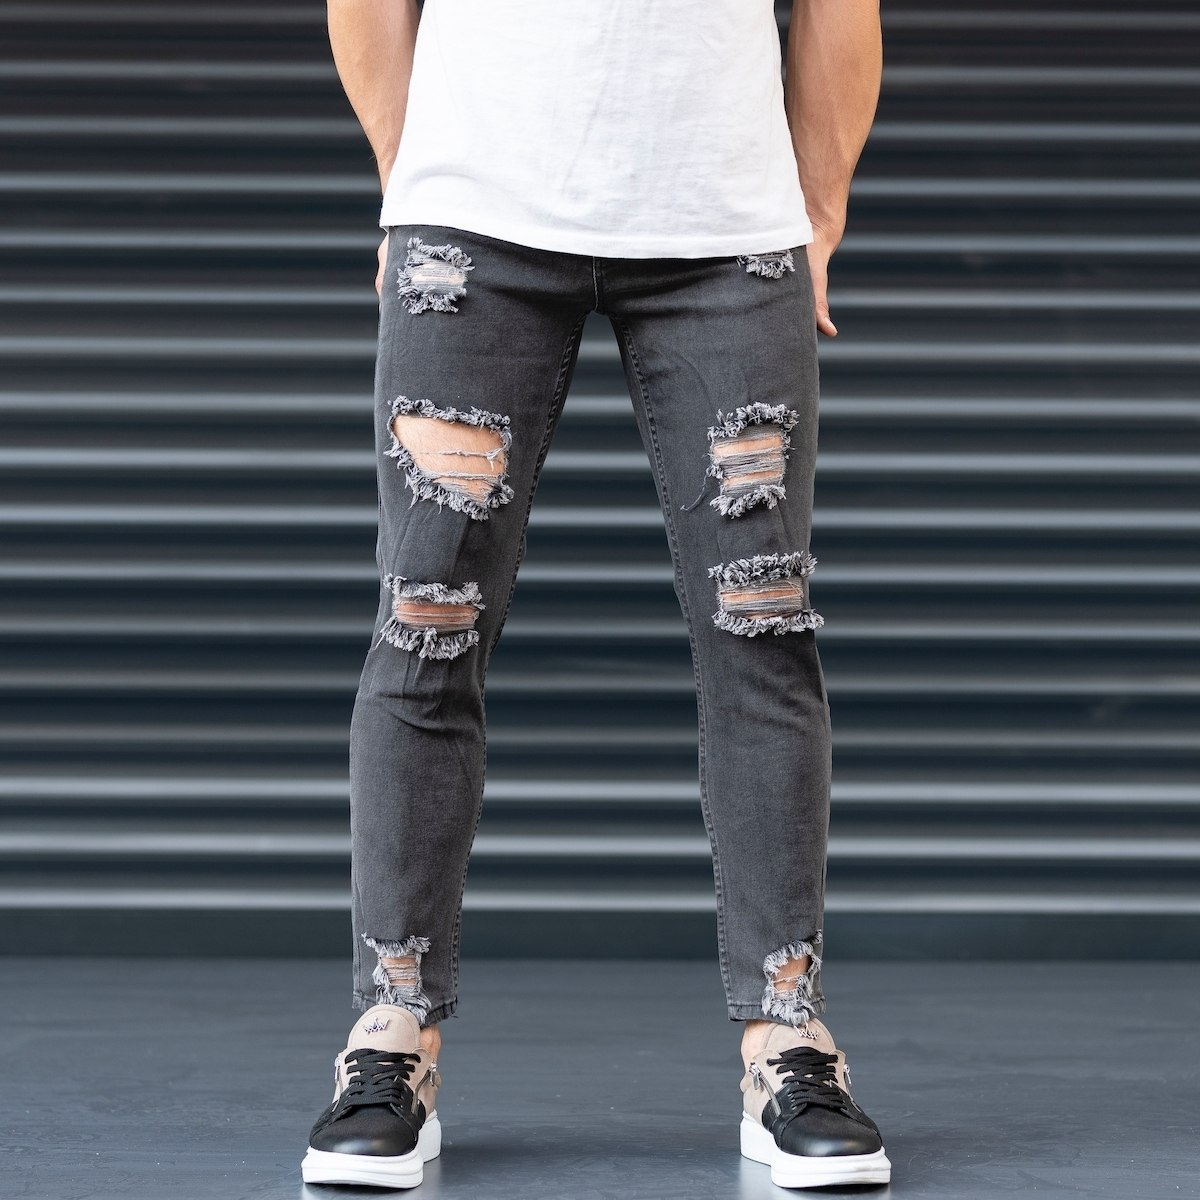 Herren Distressed Jeans in schwarz